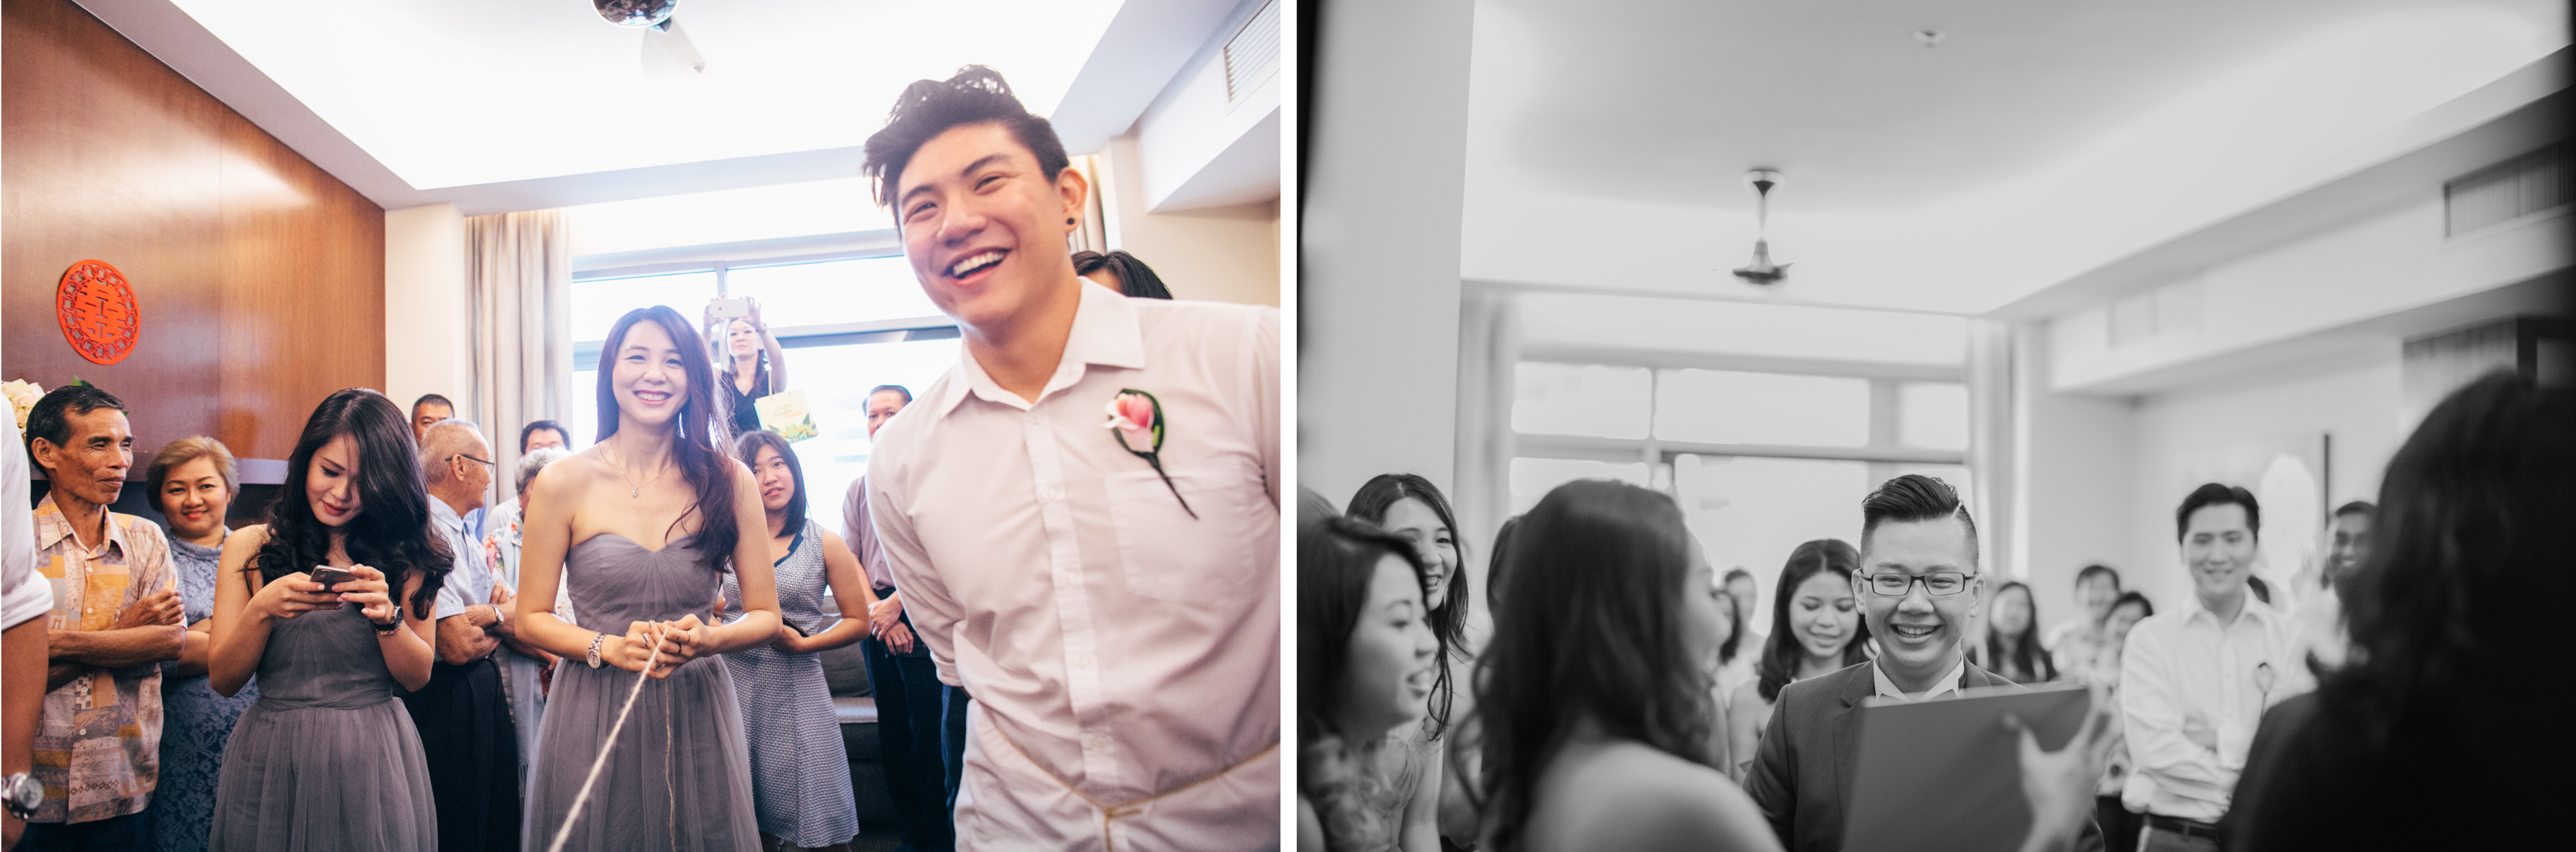 47-hellojanelee-kenneth-proposal-wedding-malaysia